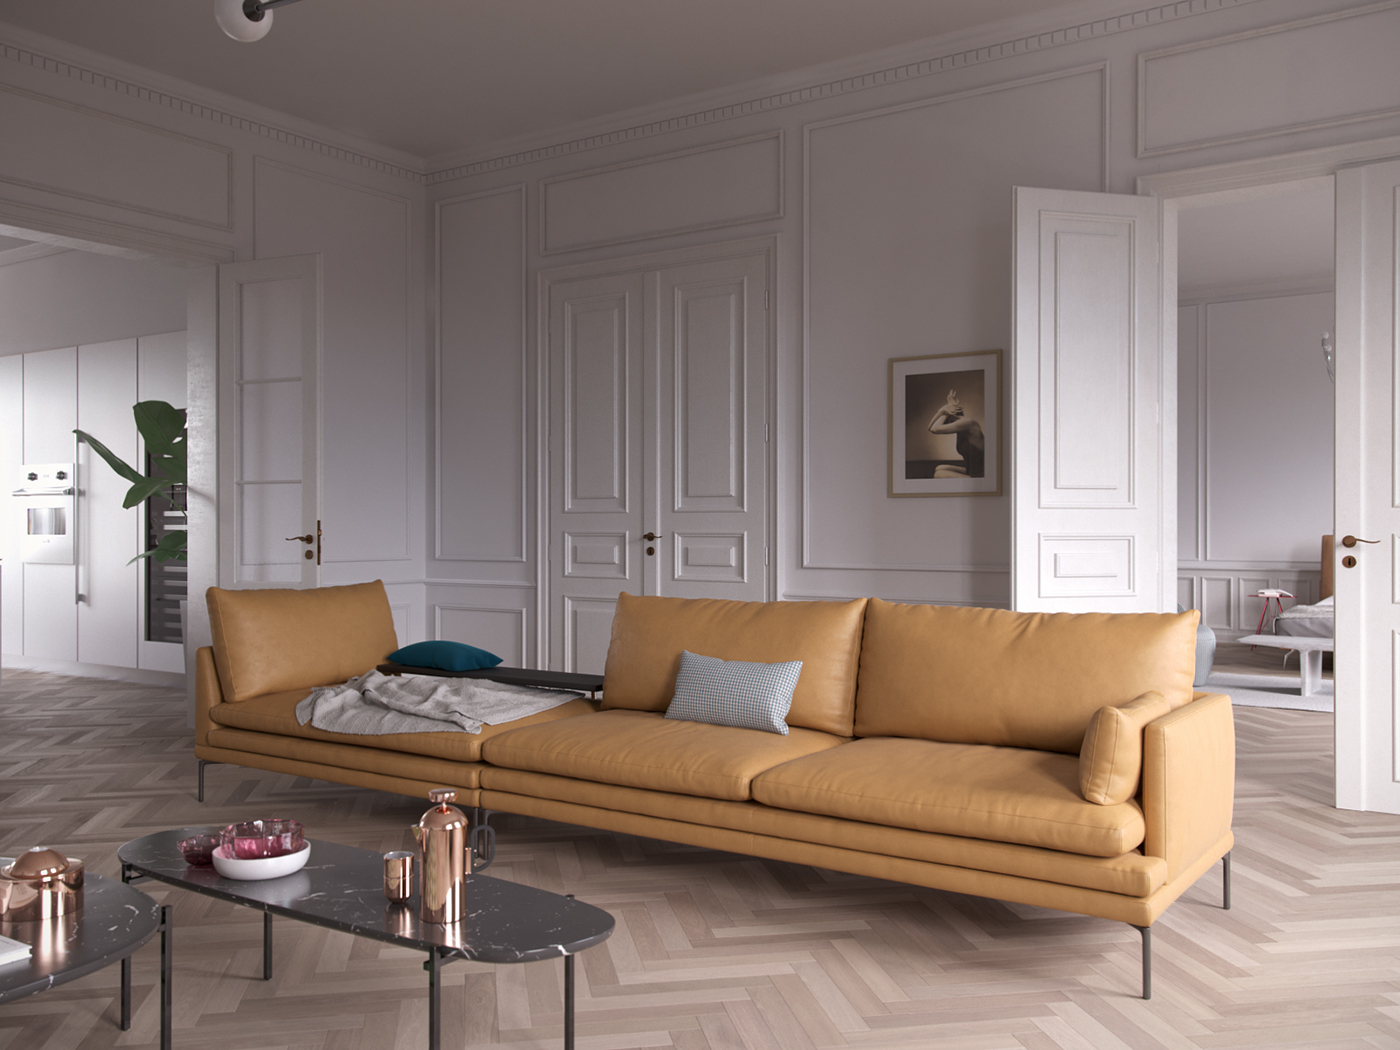 Servomuto Zanotta French Apartment With Italian Interior On Behance